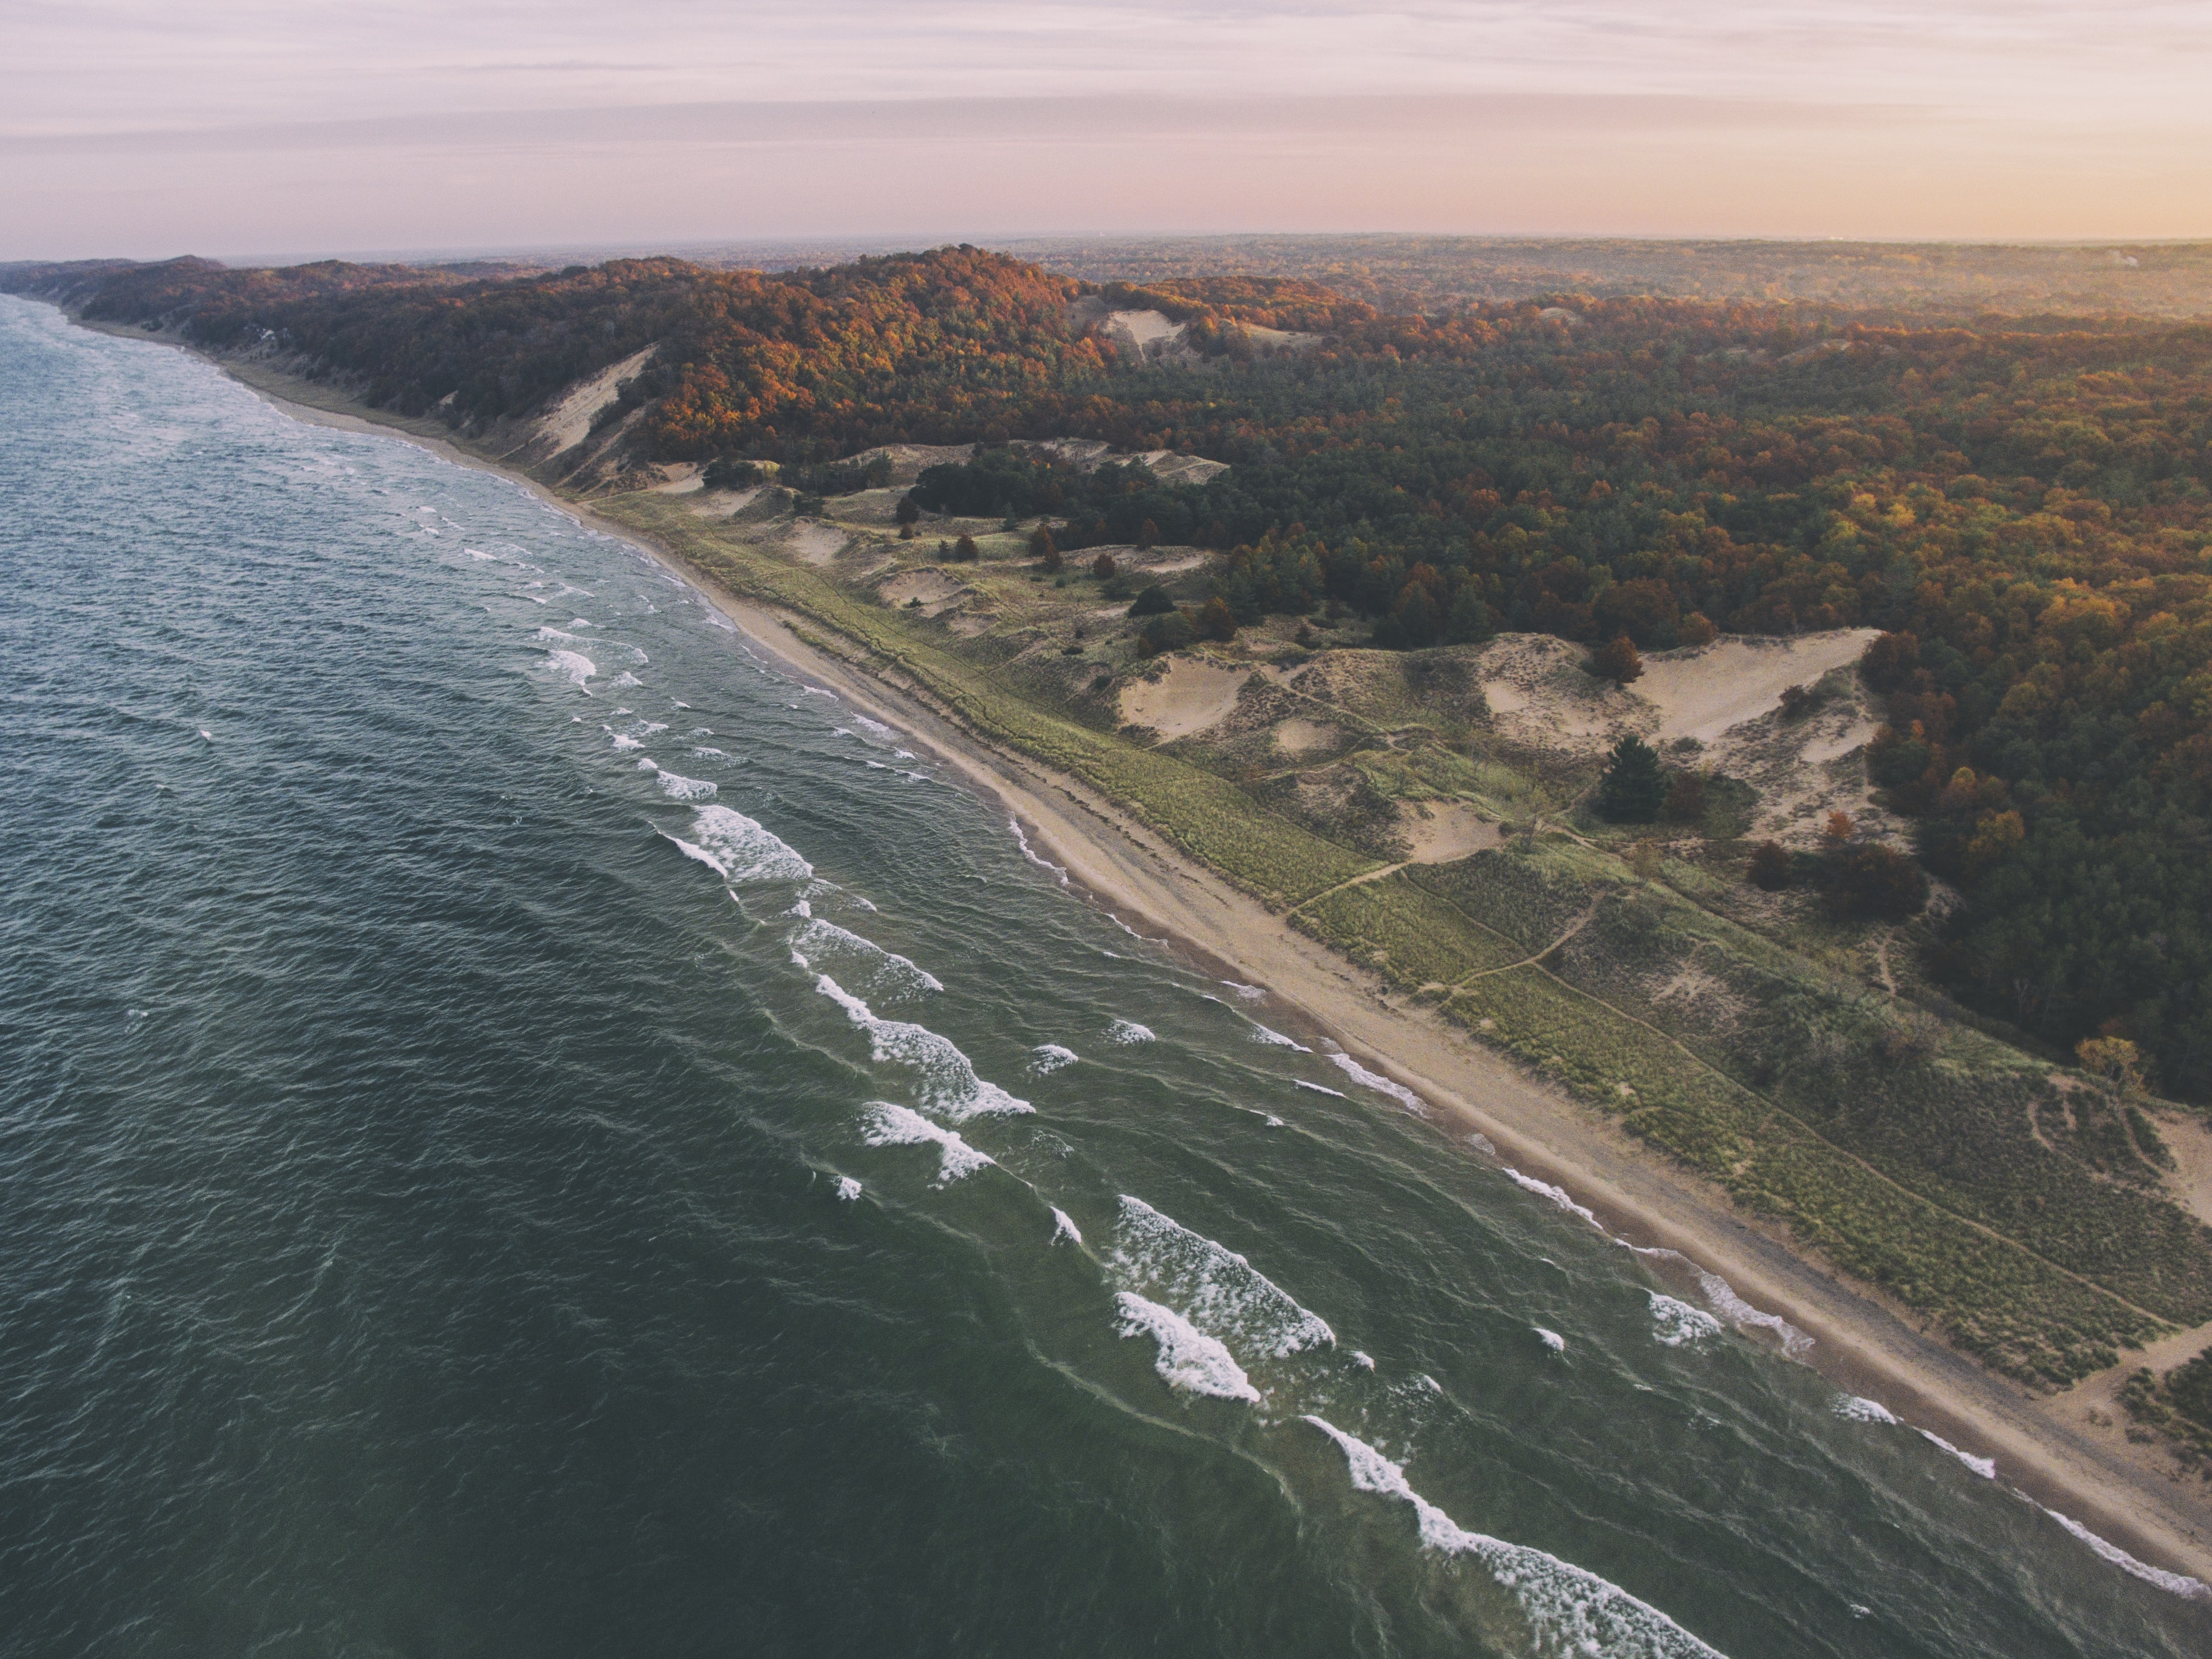 A drone shot of a lake and forest in autumn in Holland, Michigan, United States